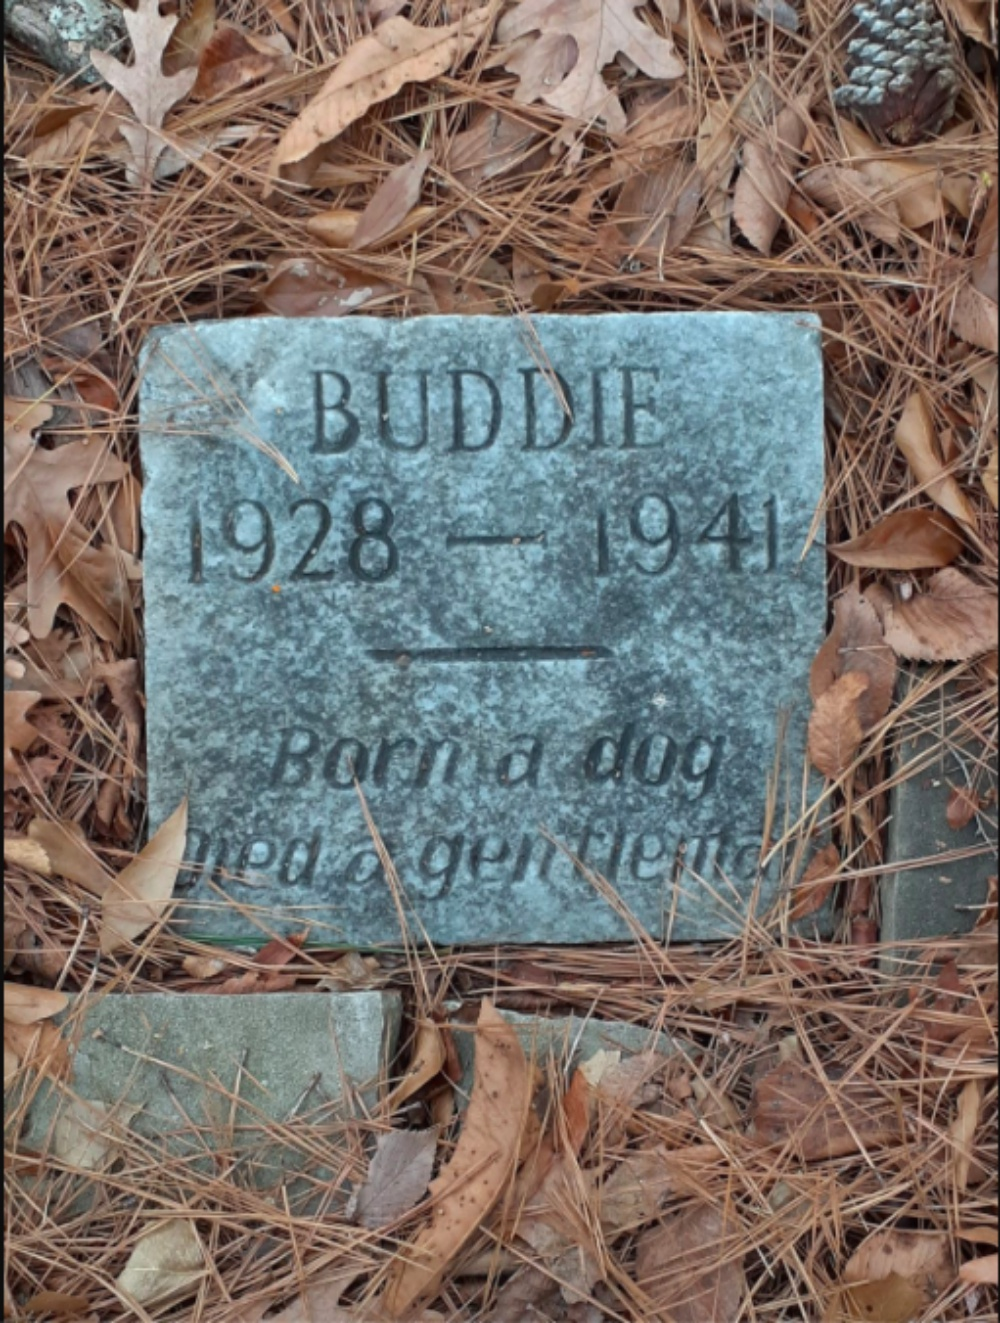 Man Brought To Tears When He Stumbles Upon 80-Year-Old Dog Grave In Louisiana Park